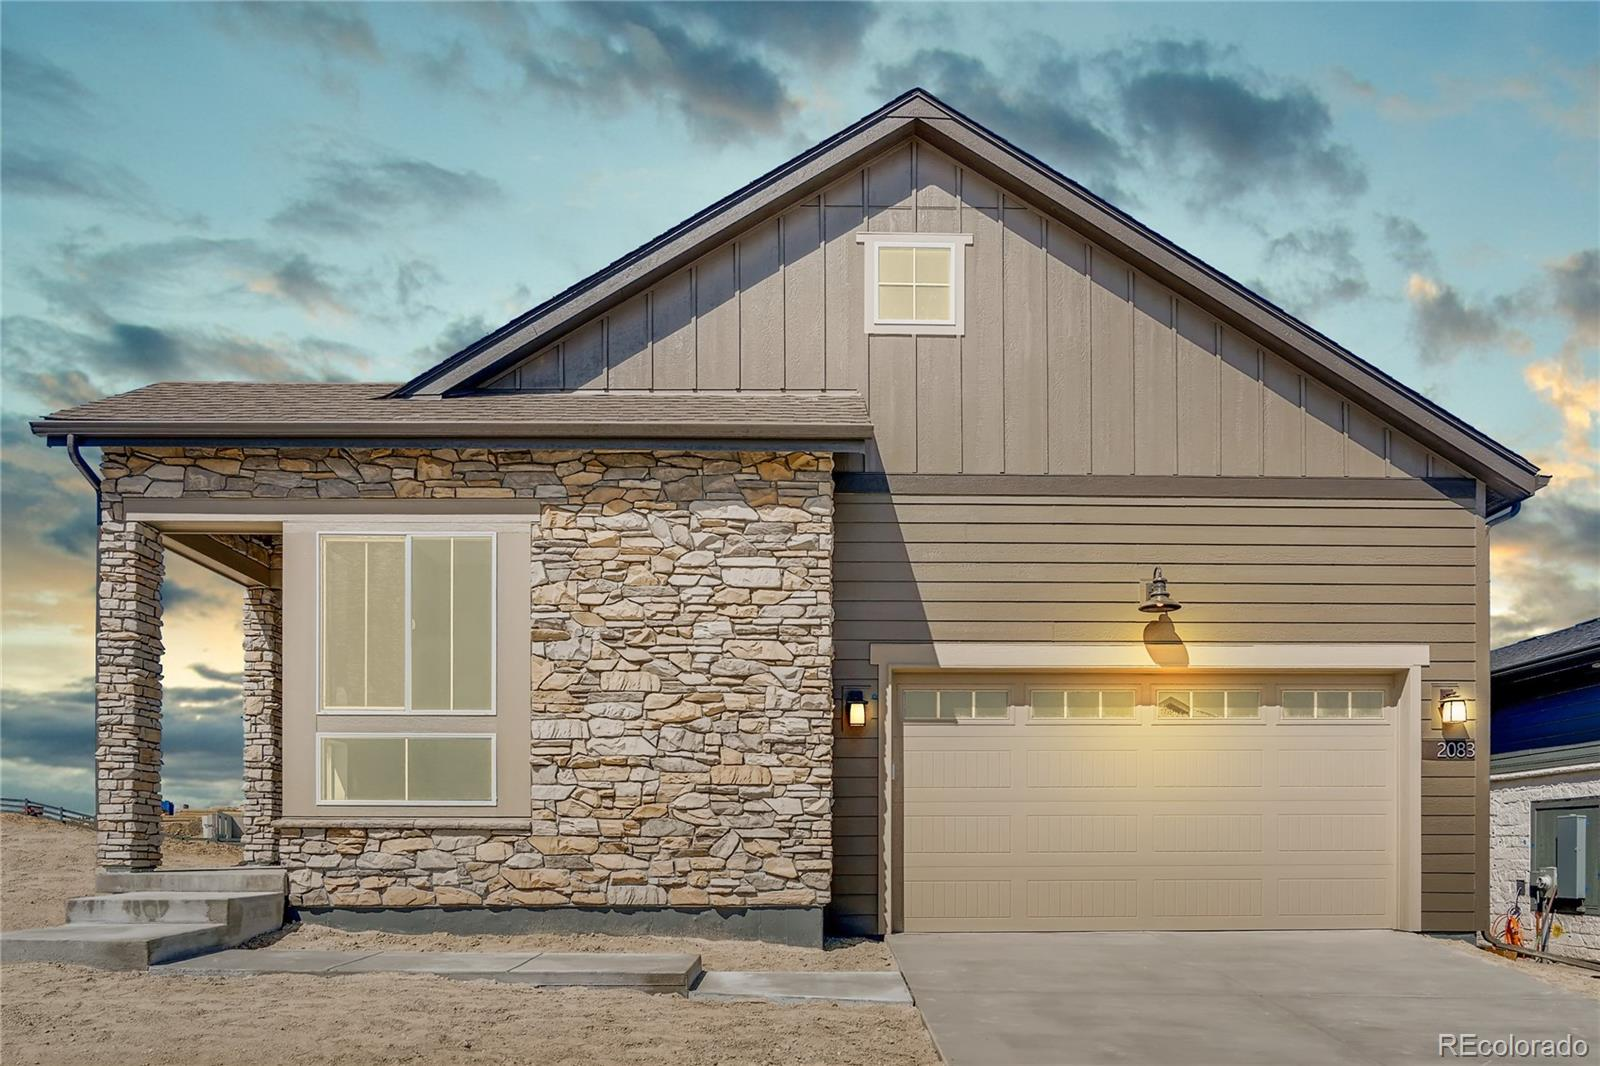 """Available in April/May 2020.  Gorgeous Legends ranch plan in The Canyons features 3 beds, 3.5 baths, kitchen, great room, study, finished basement w/wetbar and 2 car garage.  Great room with fireplace with full height tile and mantel. The kitchen features an island, walk-in pantry, 36"""" GE Monogram stainless appliances with refrigerator, Concerto quartz slab kitchen counters with a backsplash, and Aristokraft Lillian Purestyle White and Landen Maple Flagstone cabinetry. The dining room is conveniently located off of the kitchen - perfect for entertaining. The master bath features a barn door and framed mirrors. Other gorgeous design finishes include Vigor Oak wood-style laminate floors, craftsman chair rail w/iron balusters and a finished basement with a wet bar that includes a sink, refrigerator & dishwasher. Enjoy warm summer evenings on the covered patio off of the great room. Don't miss your opportunity."""